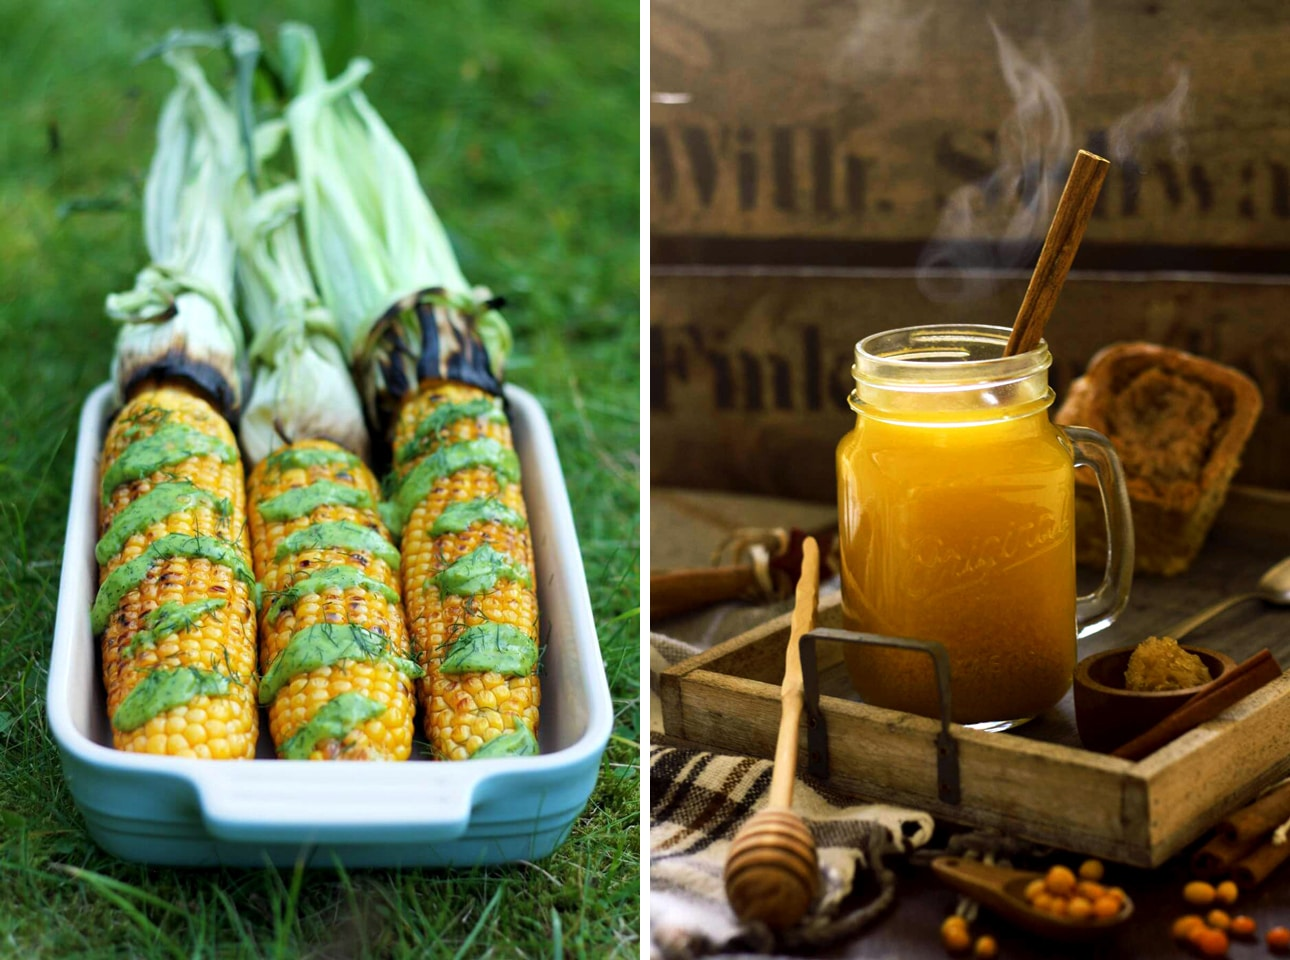 An Example of Analogous Colors in Food Photography